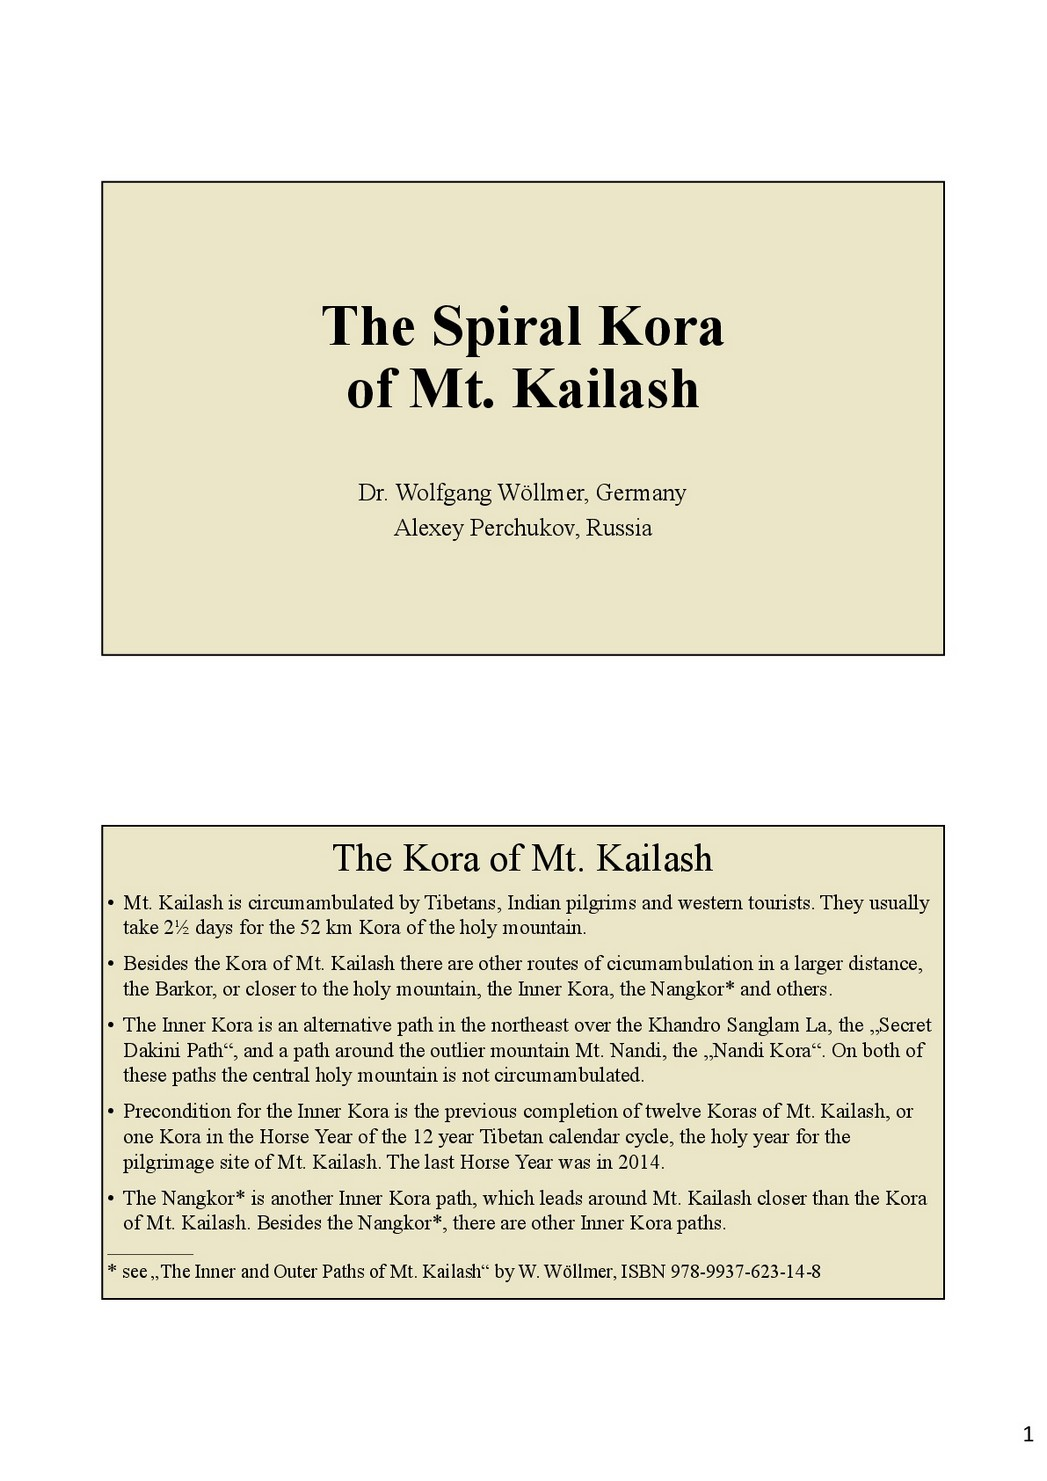 Spiral-Kora-of-Mt.-Kailash-1